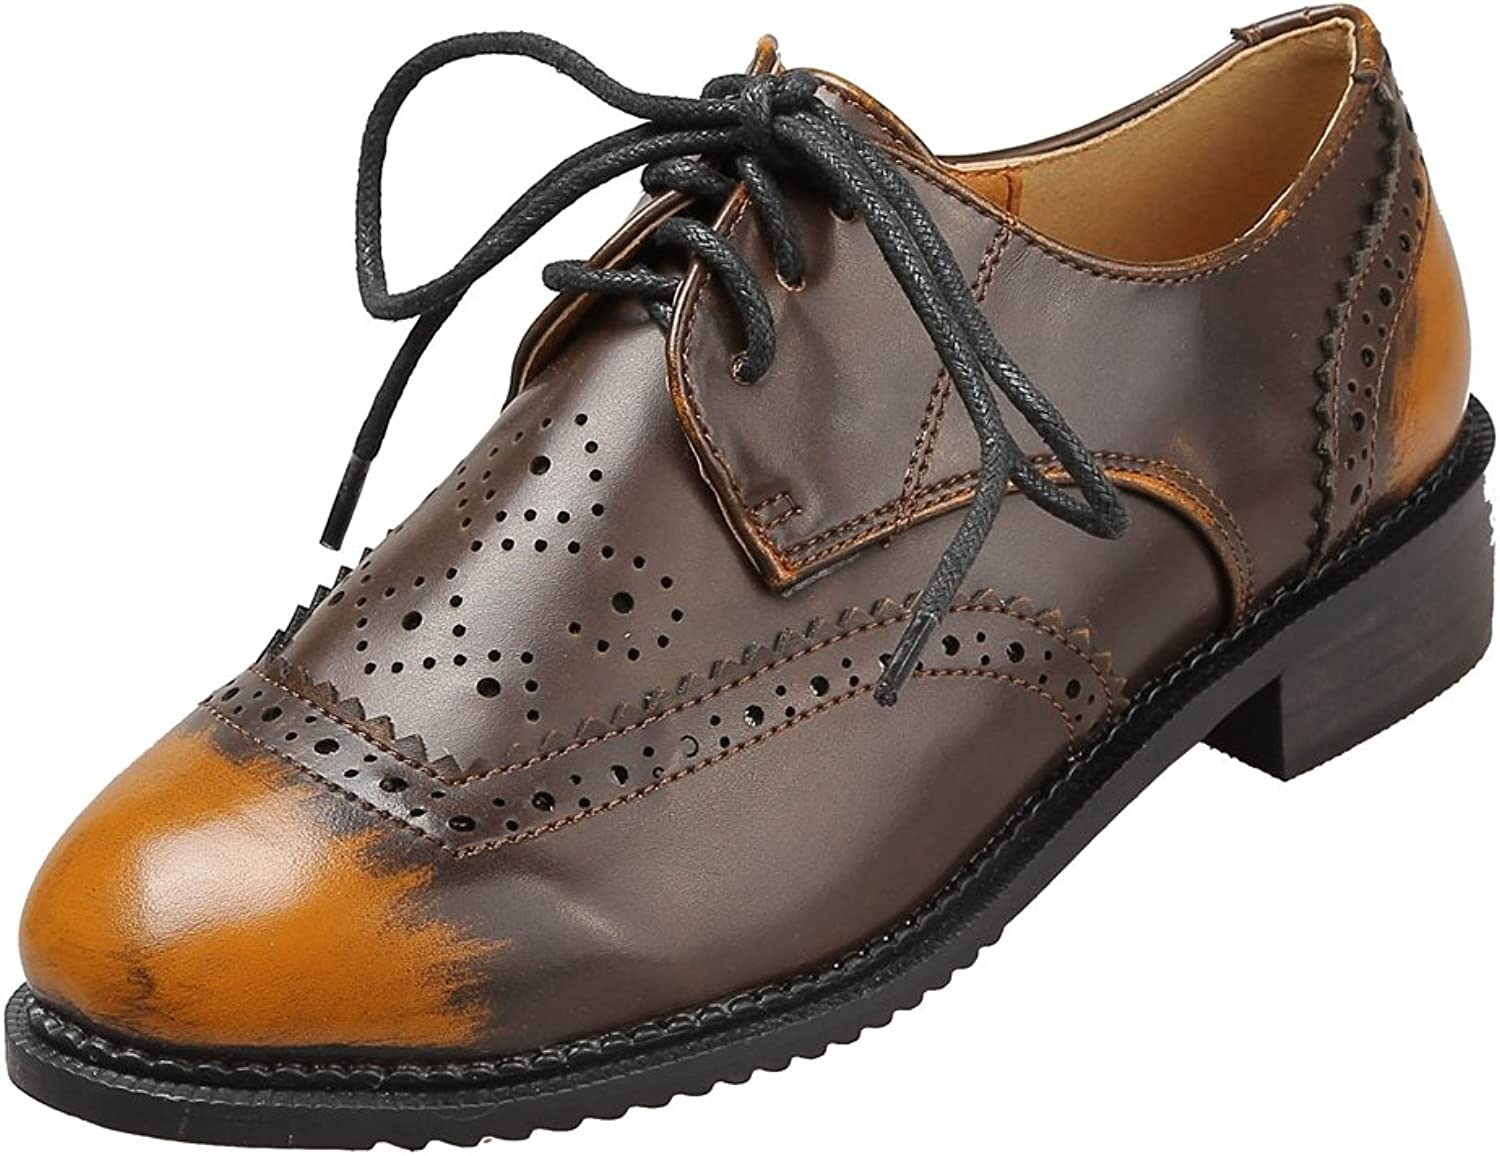 T-JULY Women's Wingtip Oxfords shoes - Comfy Perforated Lace-up Low Heel Two Tone shoes